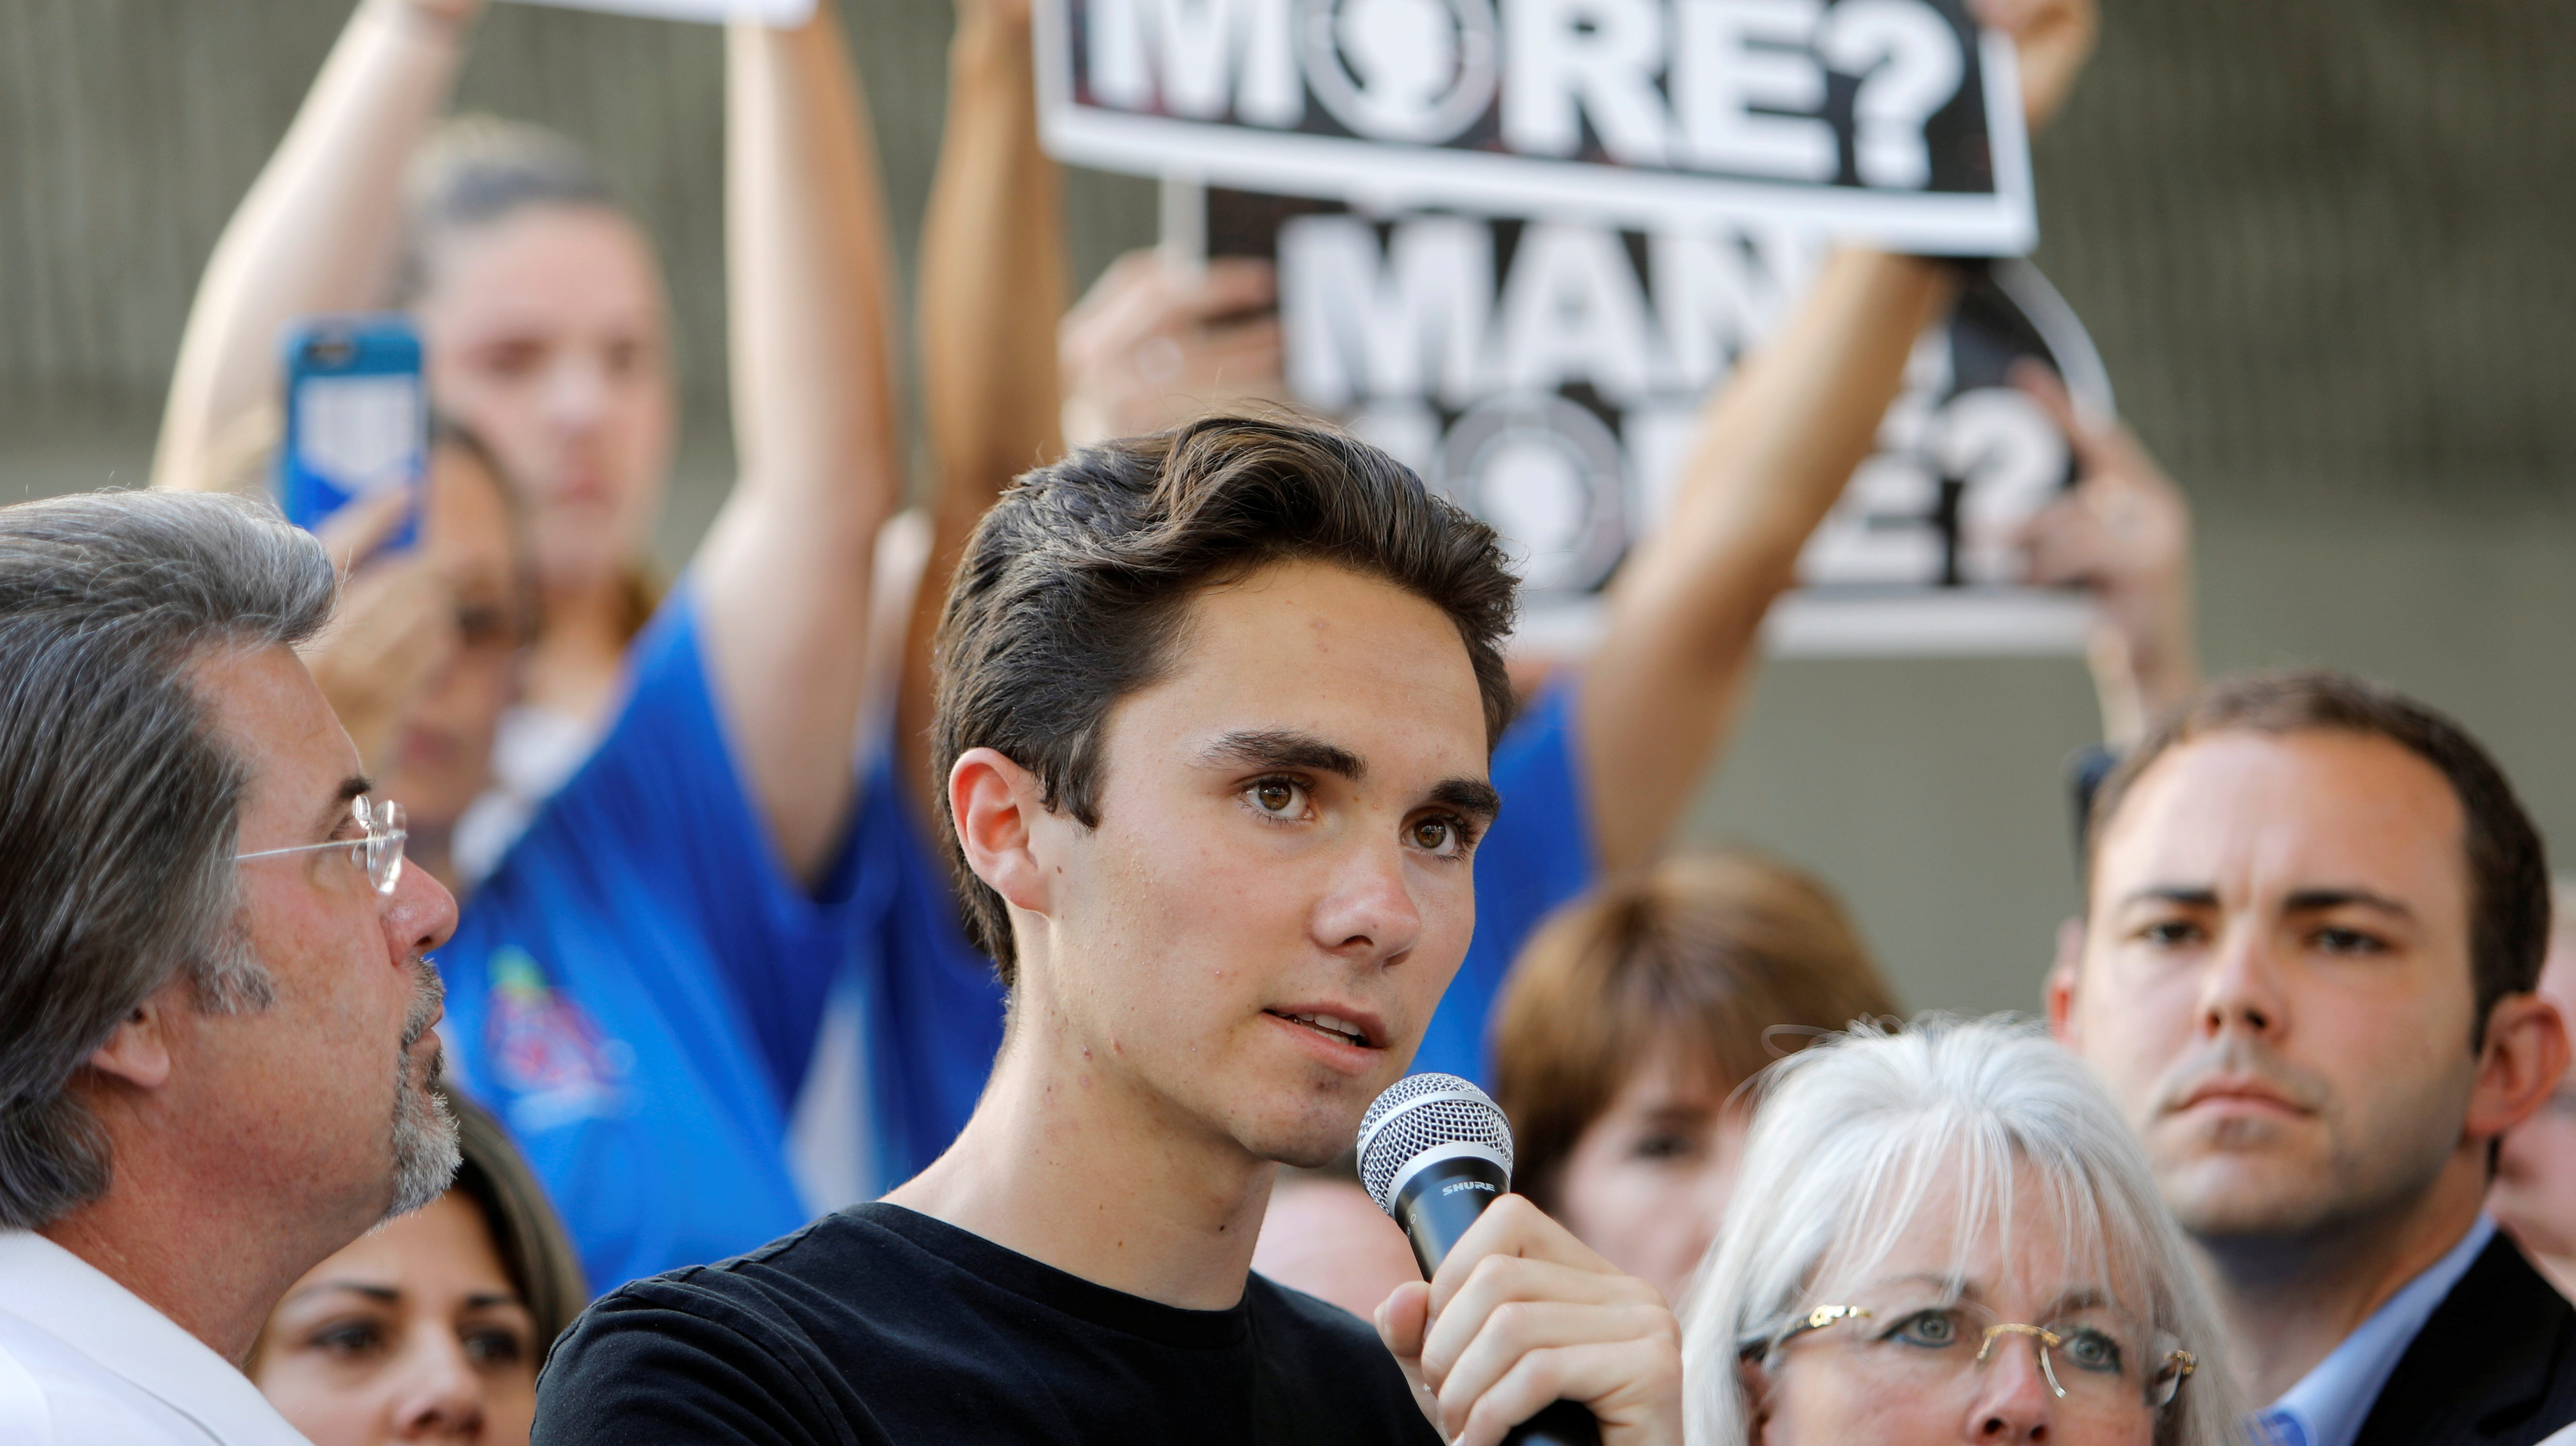 David Hogg, a senior at Marjory Stoneman Douglas High School, speaks at a rally calling for more gun control three days after the shooting at his school, in Fort Lauderdale, Florida, U.S. February 17, 2018.   REUTERS/Jonathan Drake - RC1CC98B4AB0